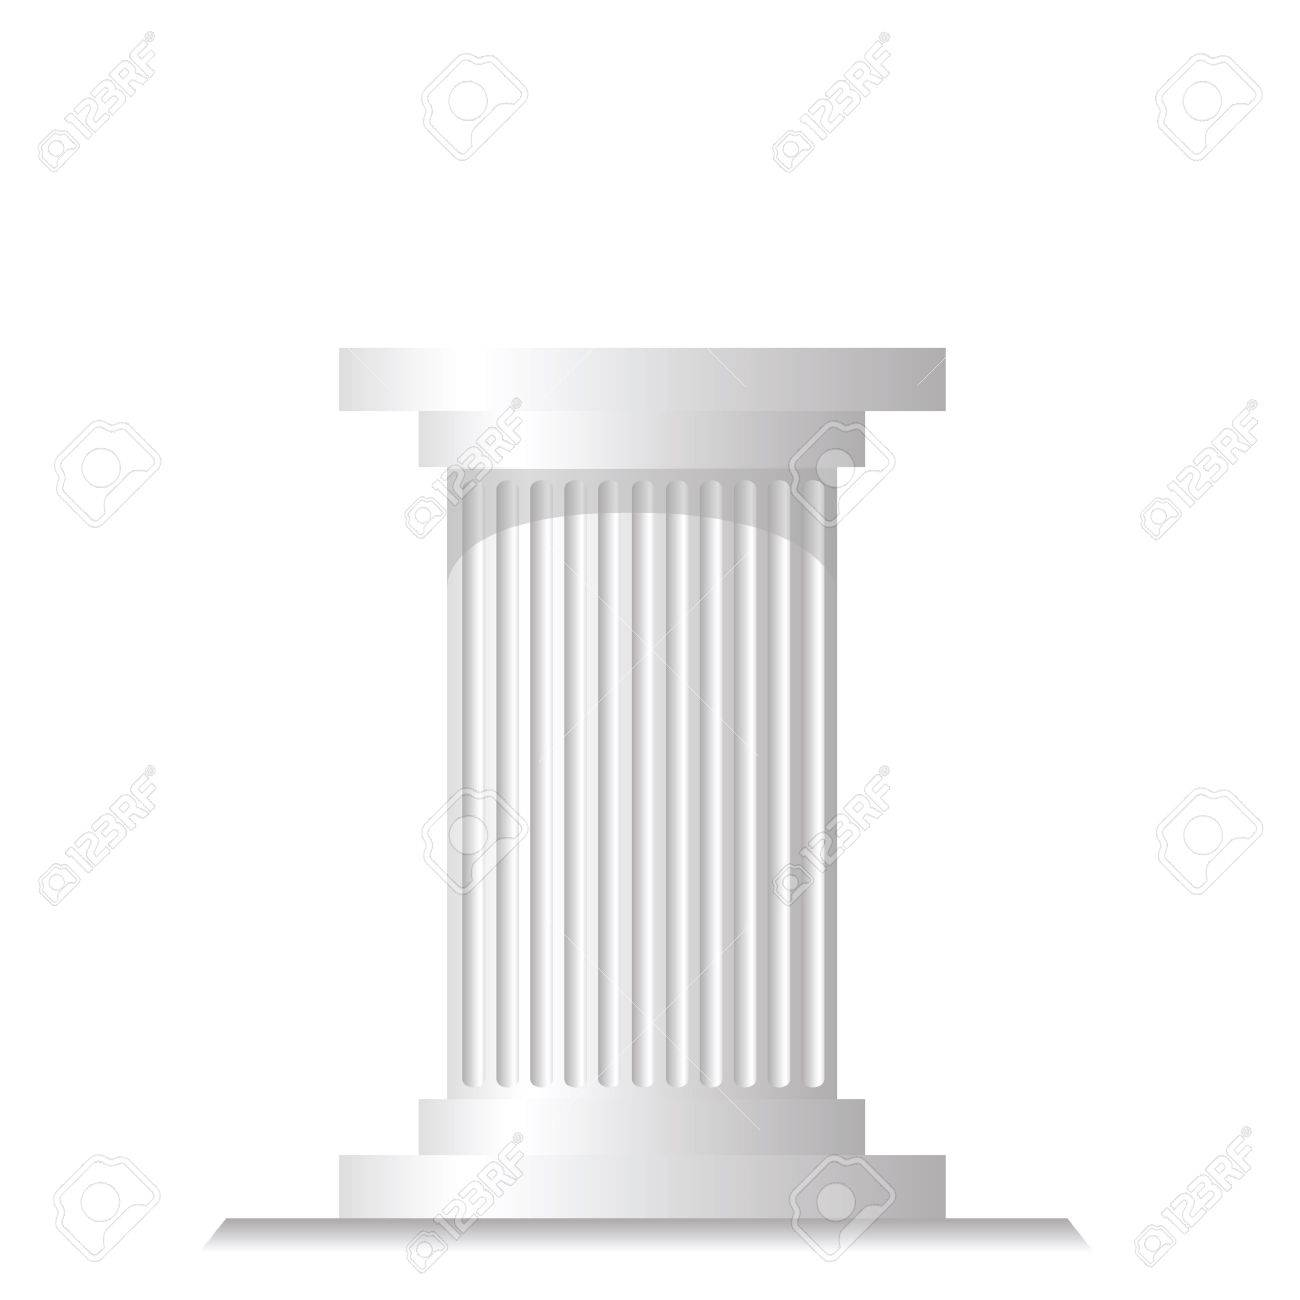 colorful illustration with ancient column for your design Stock Vector - 21379063